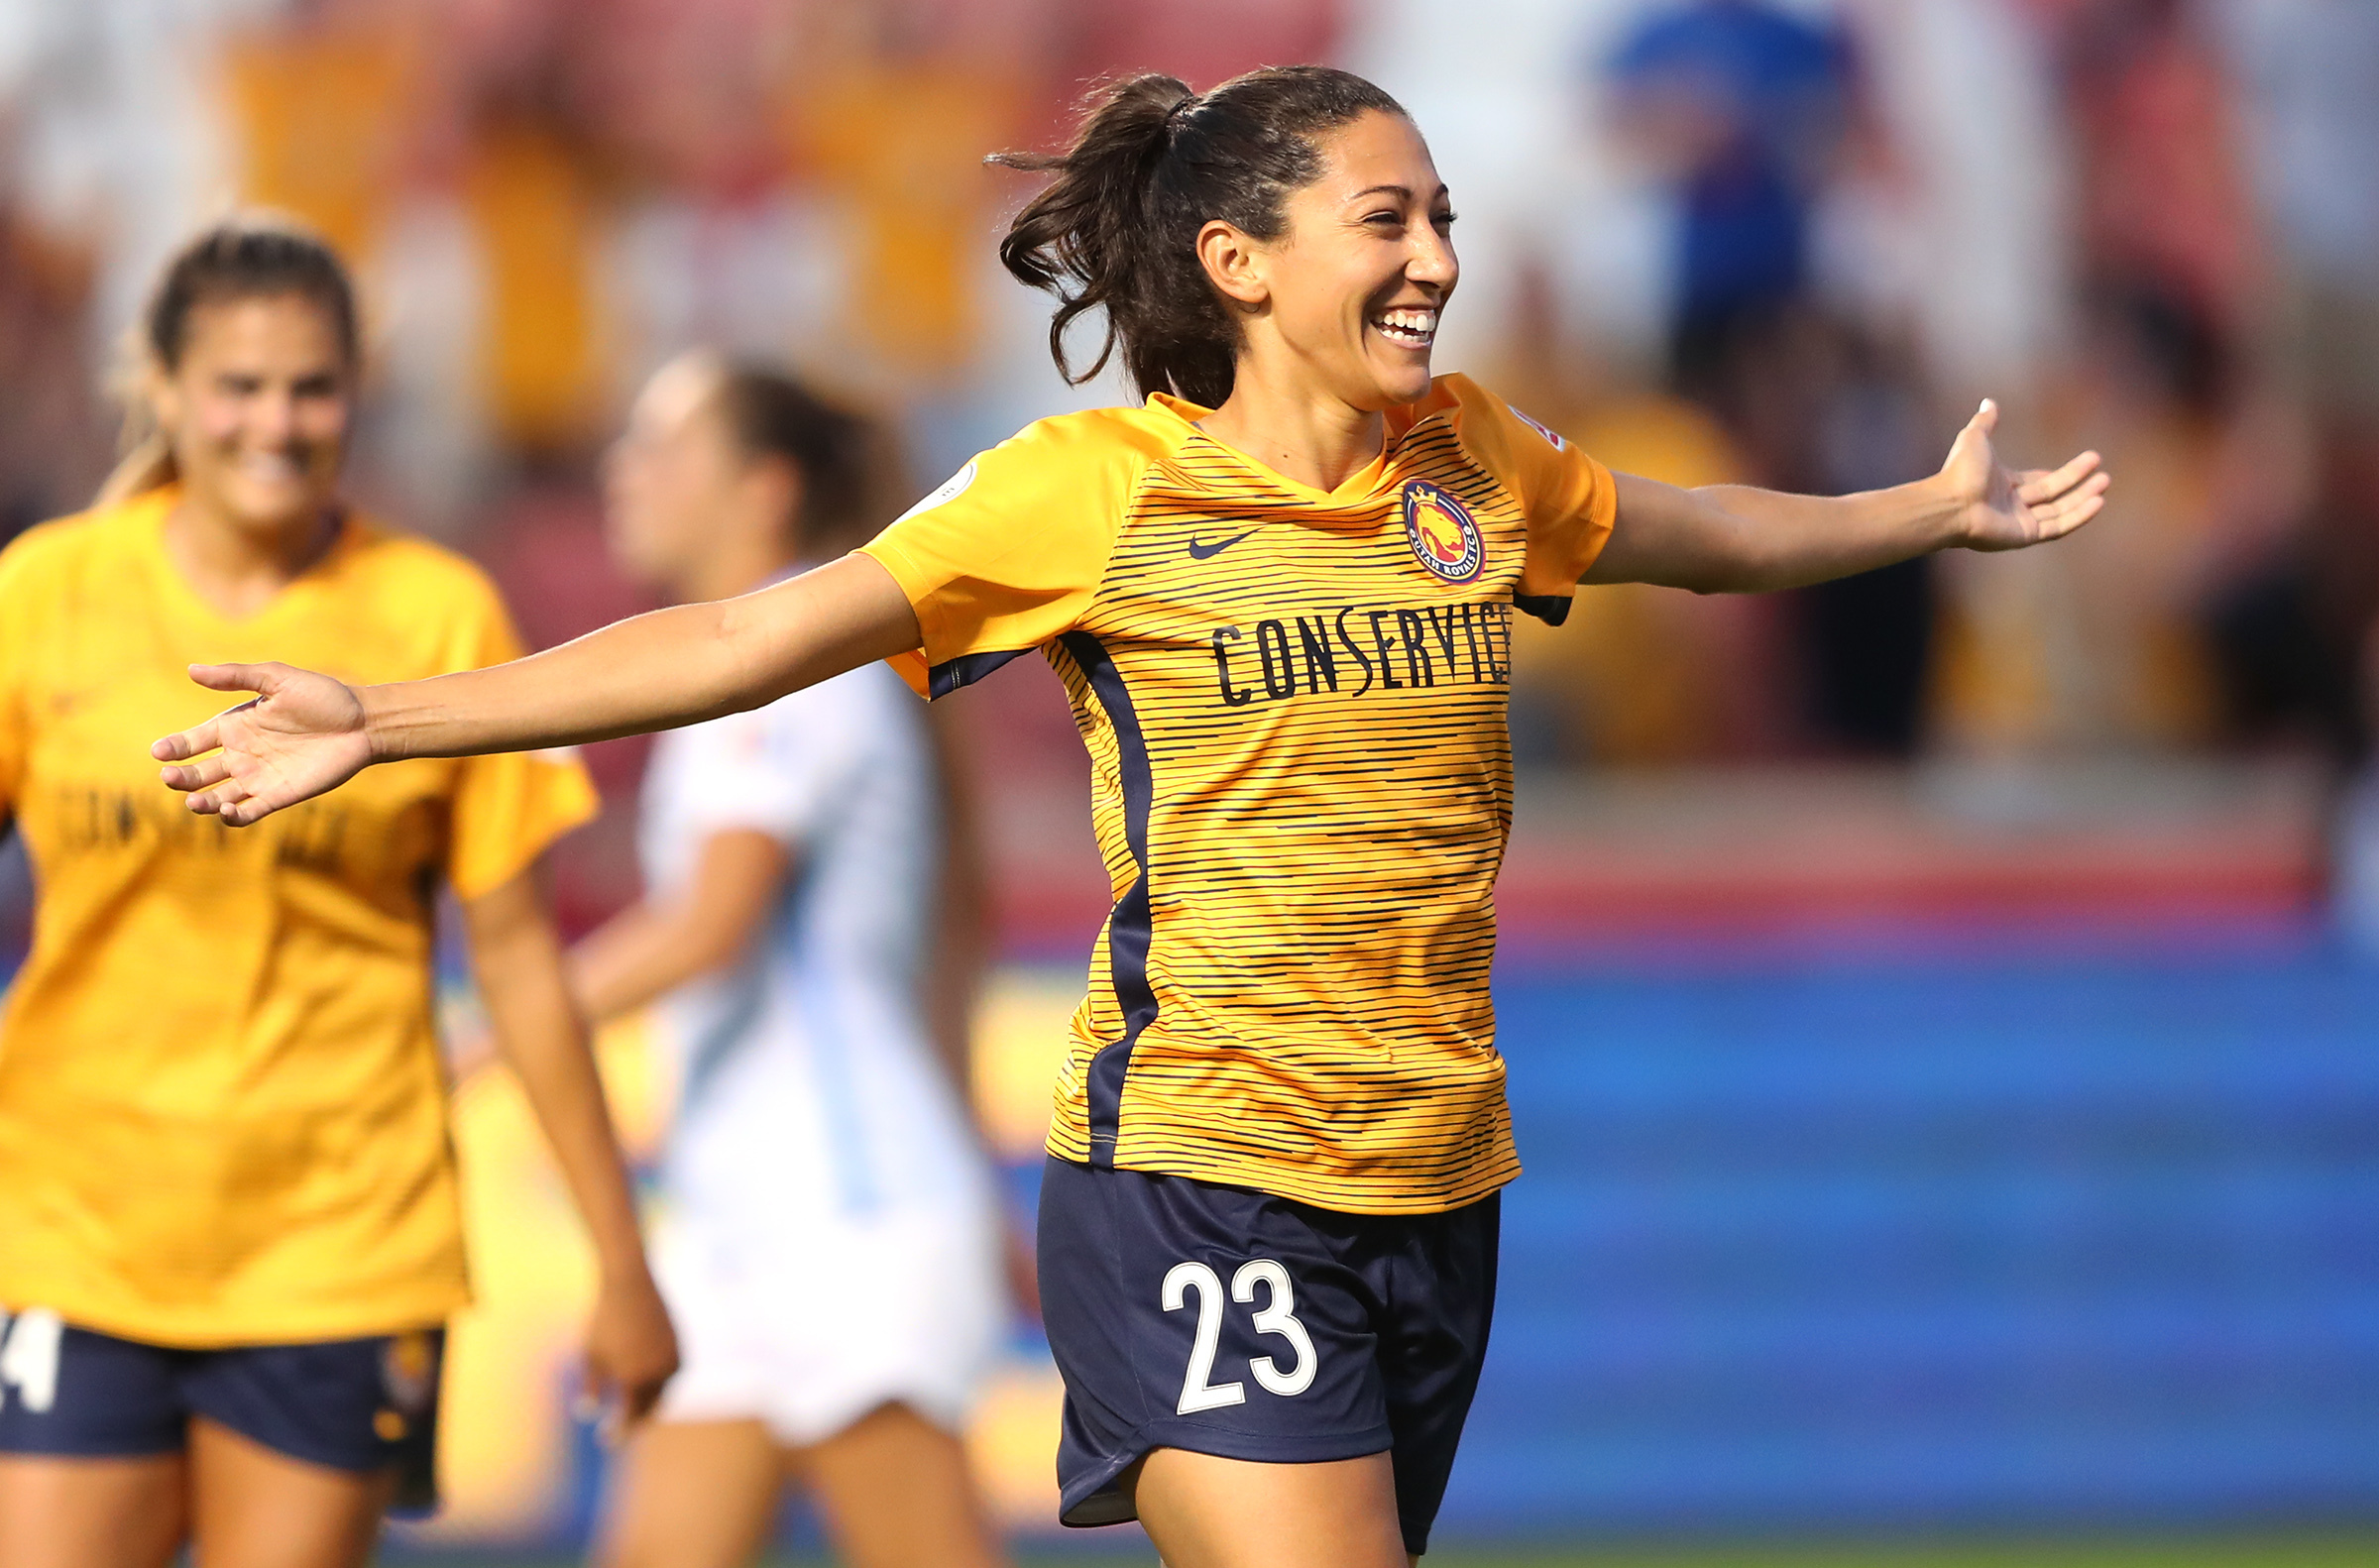 Utah Royals FC forward Christen Press (23) celebrates after scoring a goal as the Salt Lake Royals and Sky Blue FC play at Rio Tinto Stadium in Sandy on Wednesday, Aug. 7, 2019.